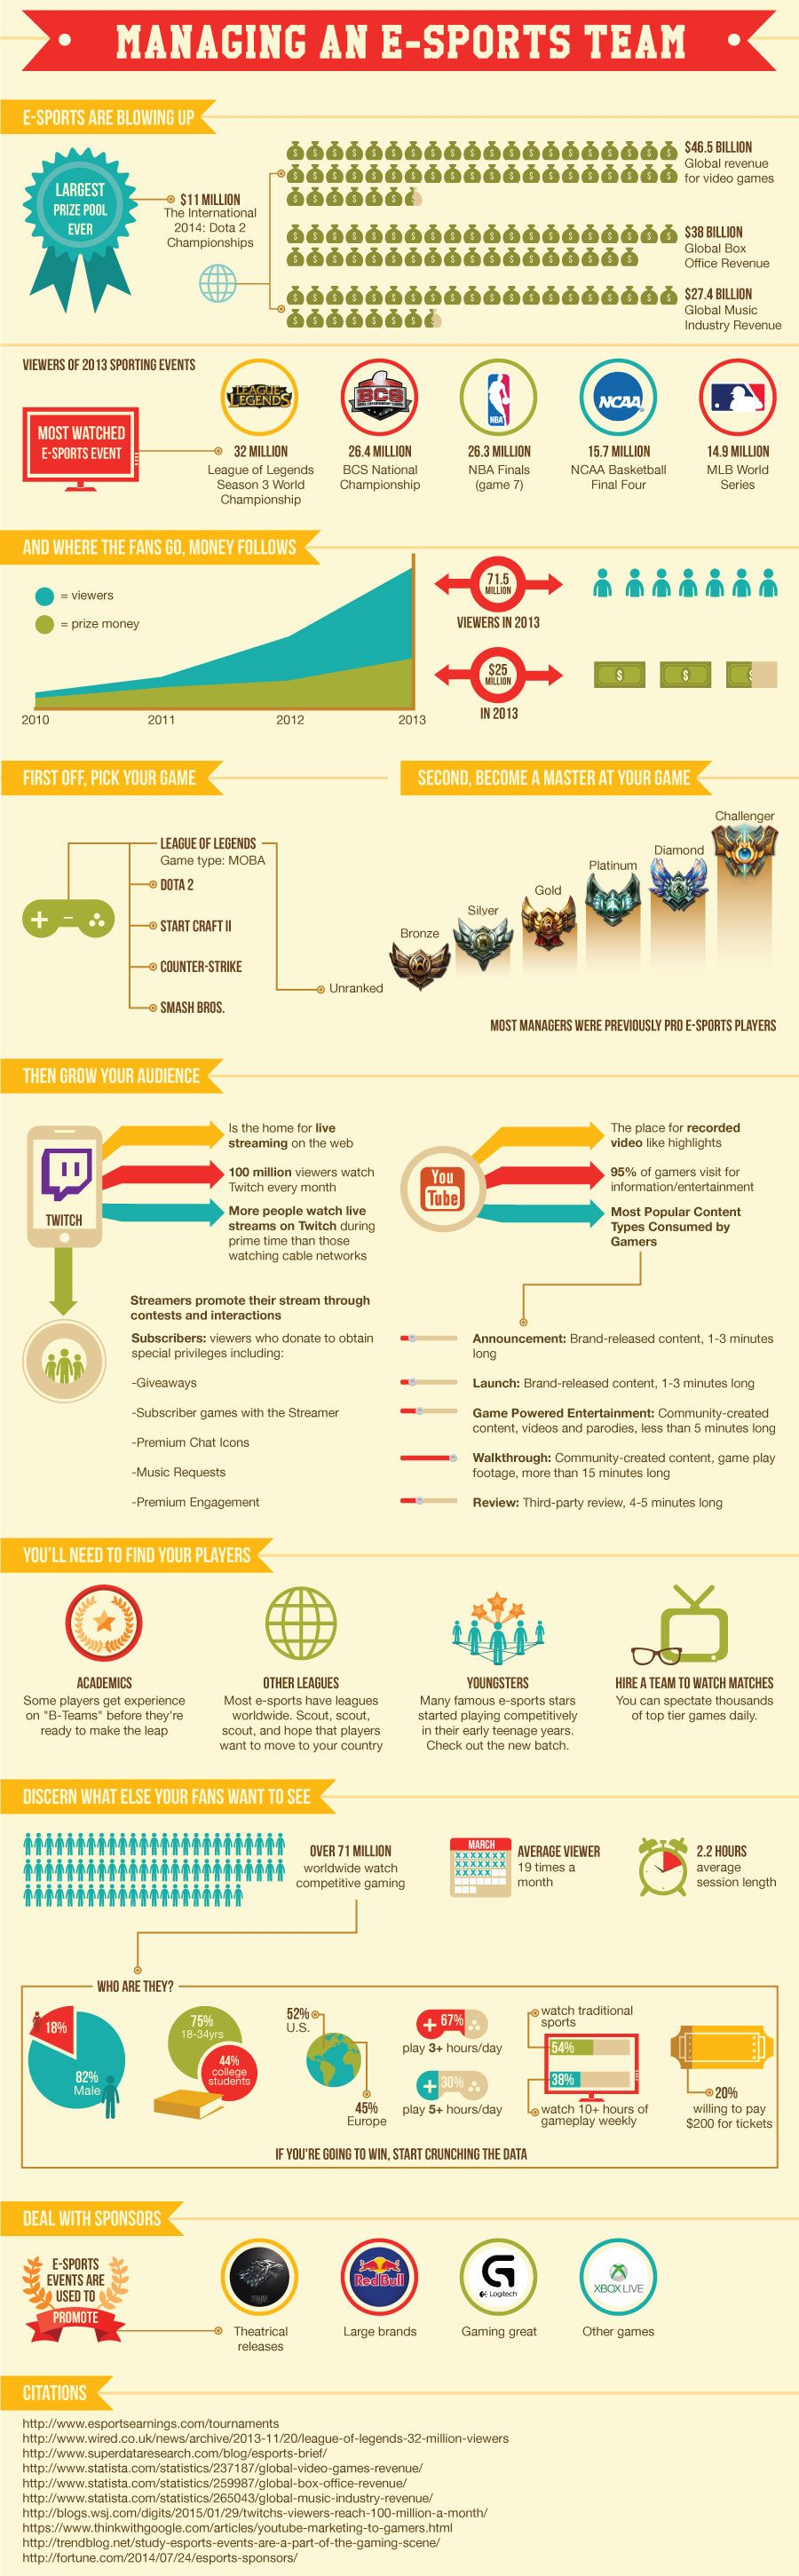 Global revenue for video games Infographic Management